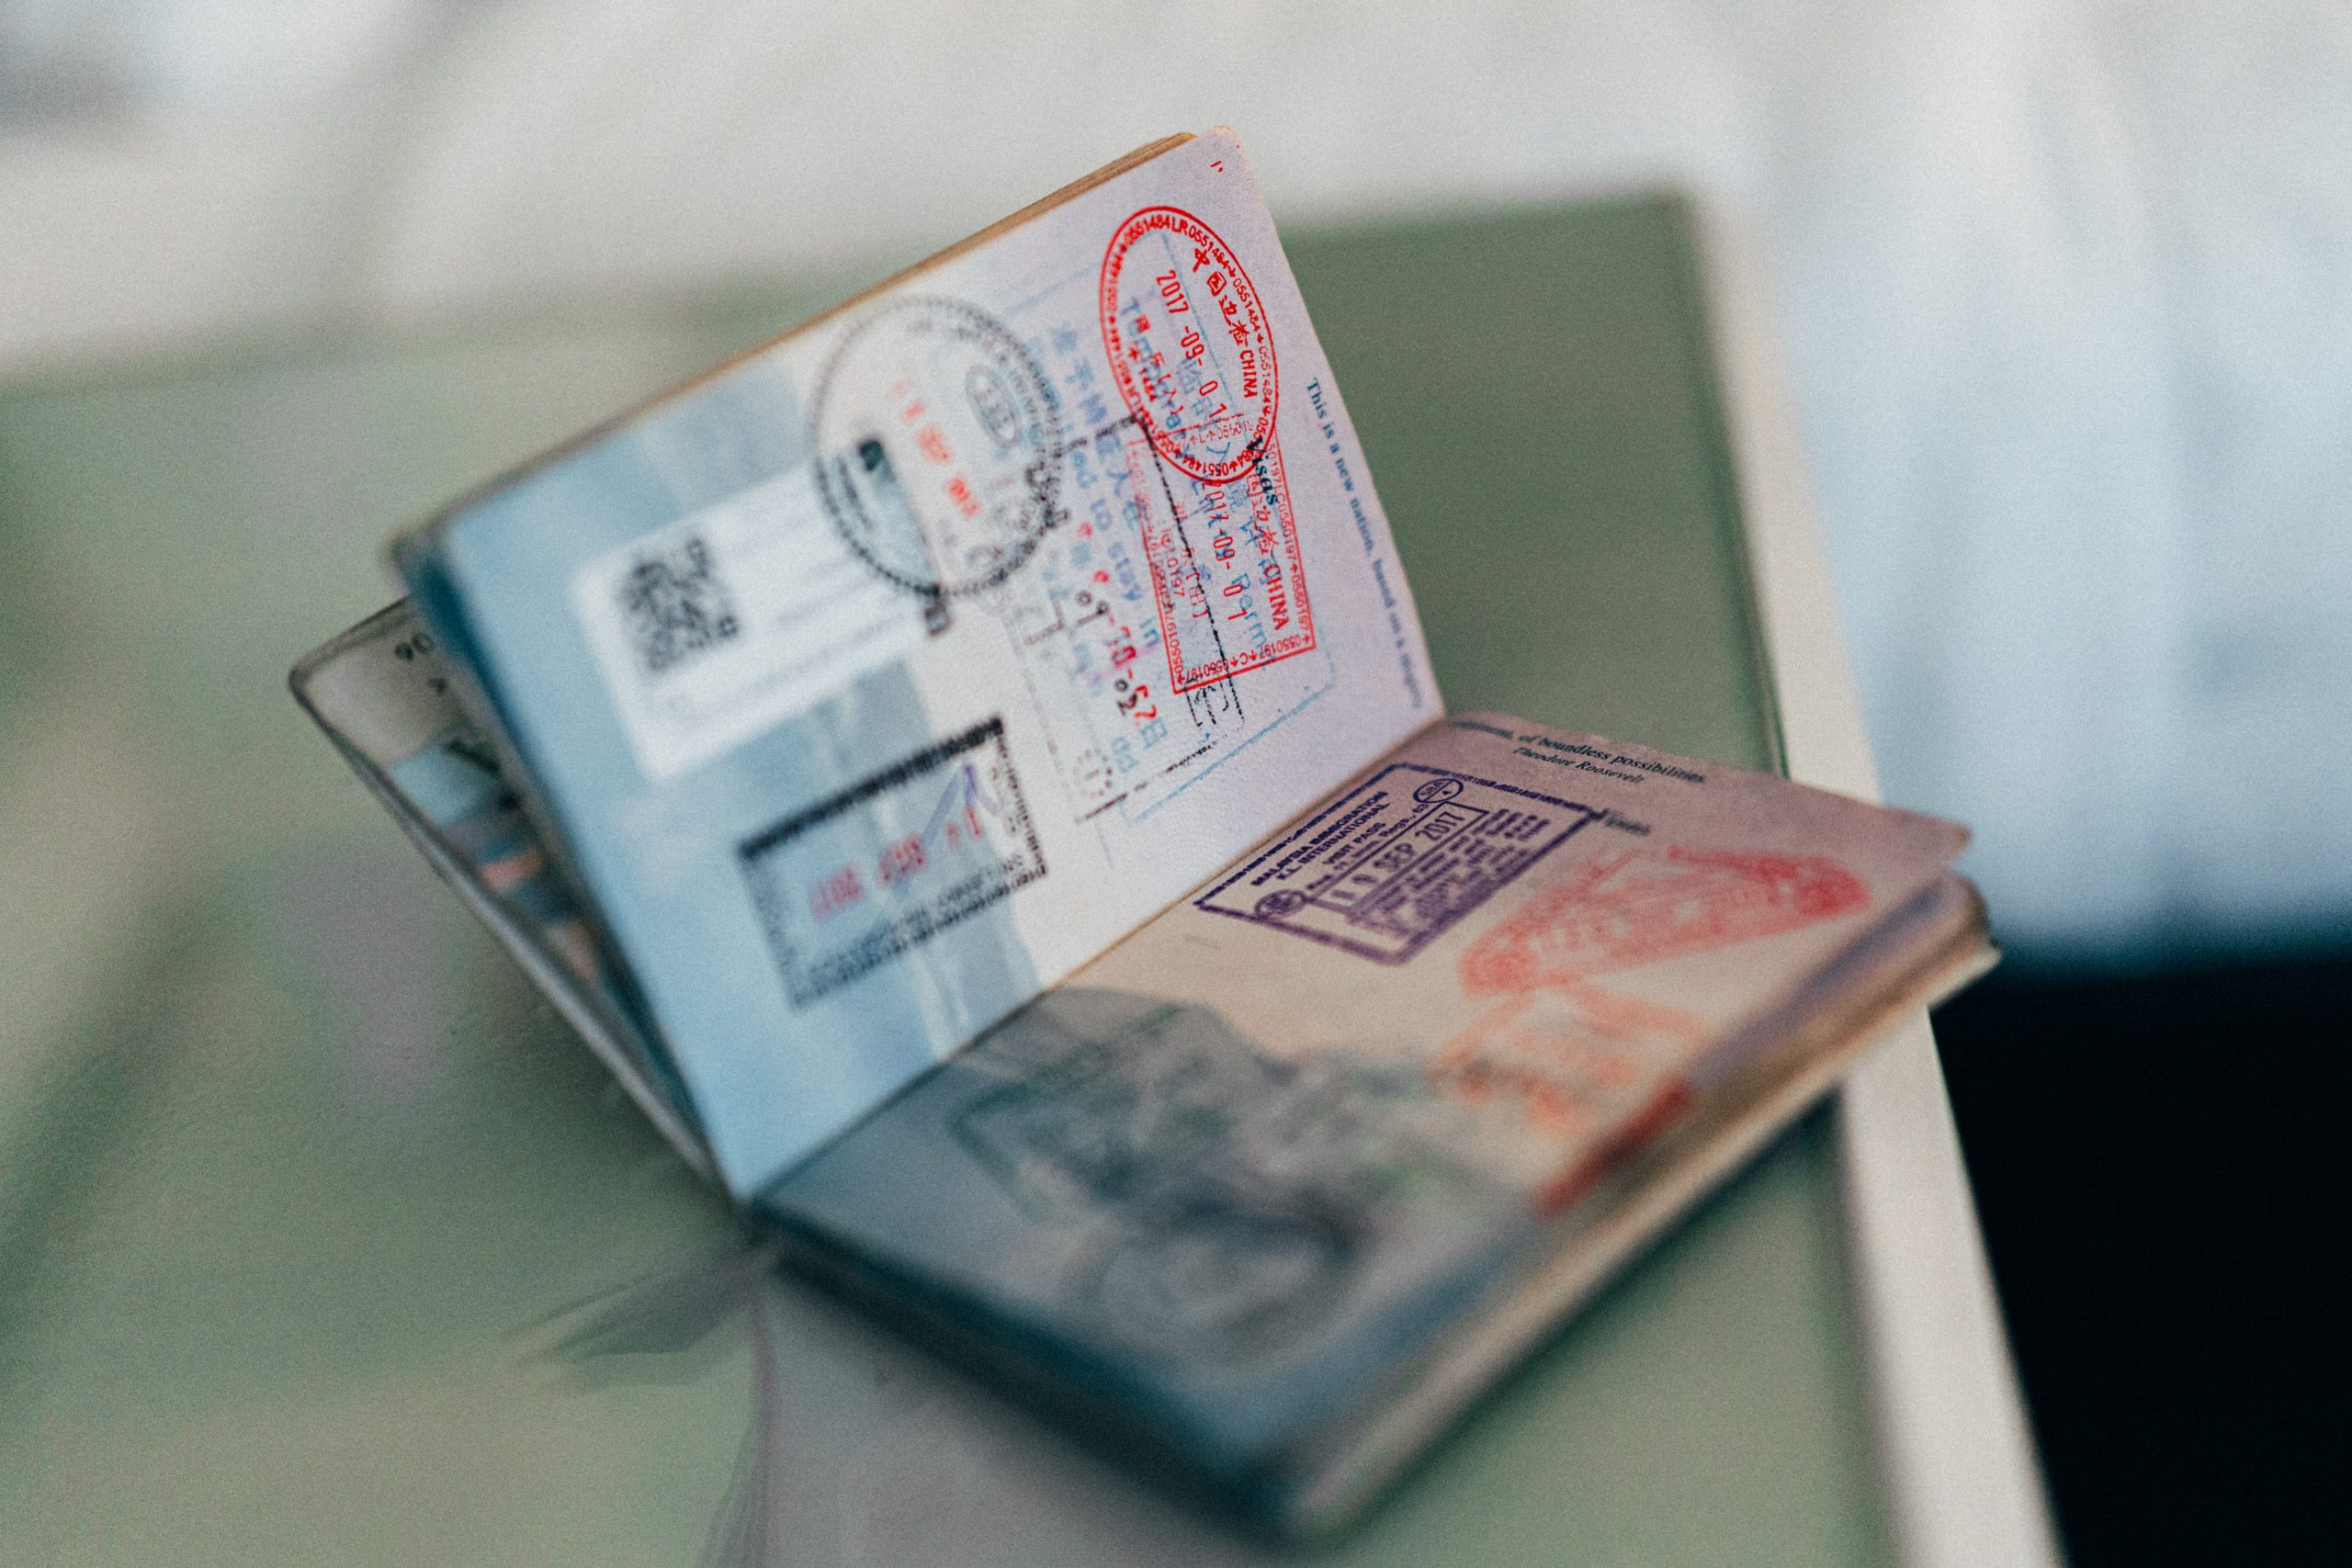 Madagascar from the US get a VISA